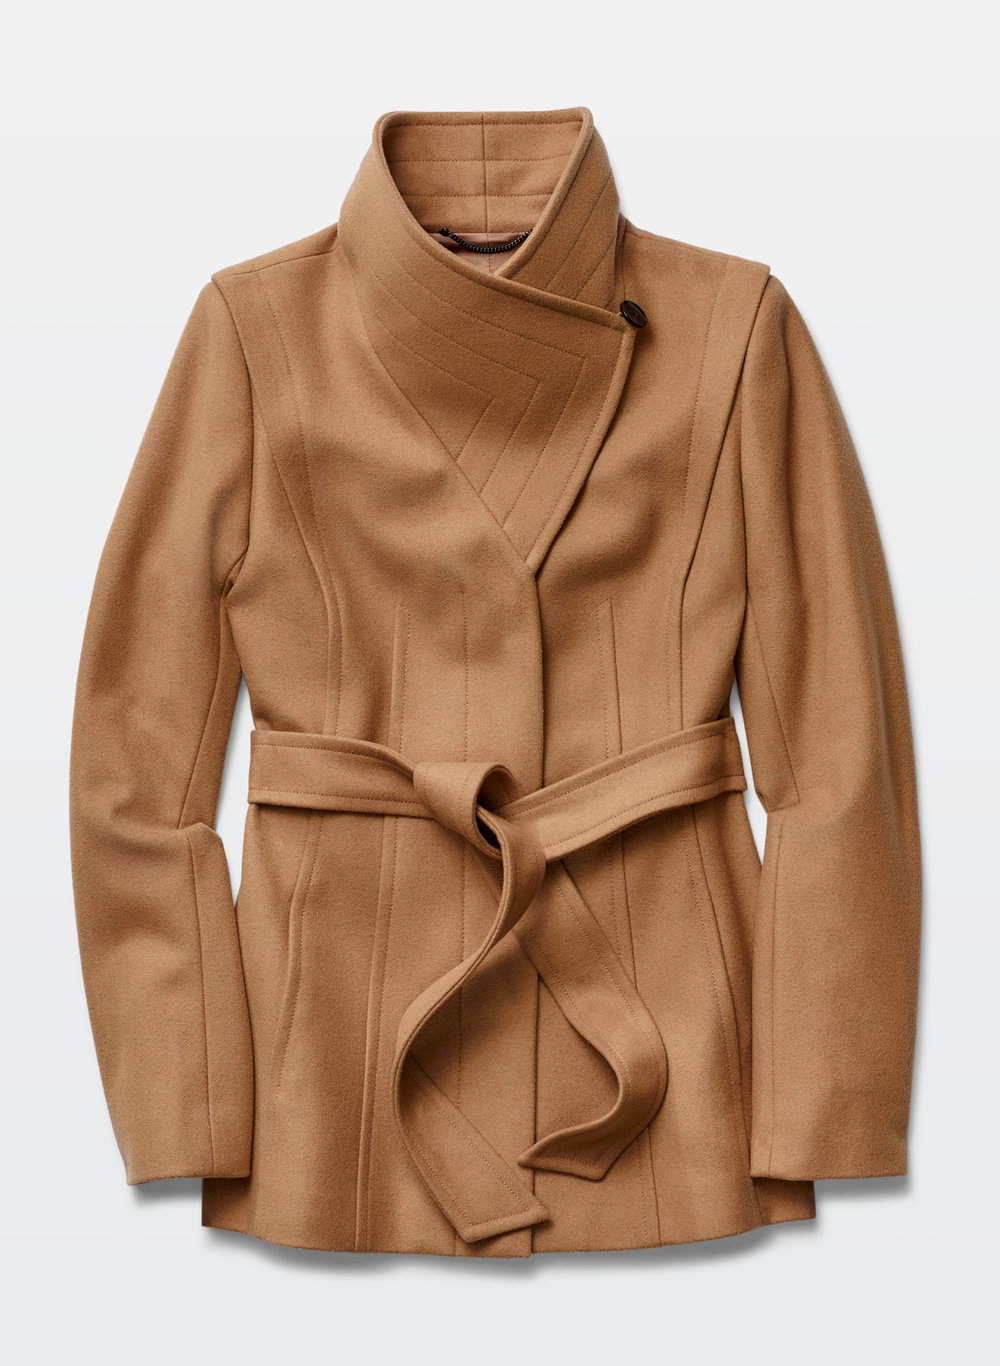 Spencer Wool Coat Wrap coat with hidden placket with a draped funnel collar and detachable self tie belt. Has a soft blend of wool and cashmere. BABATON $295